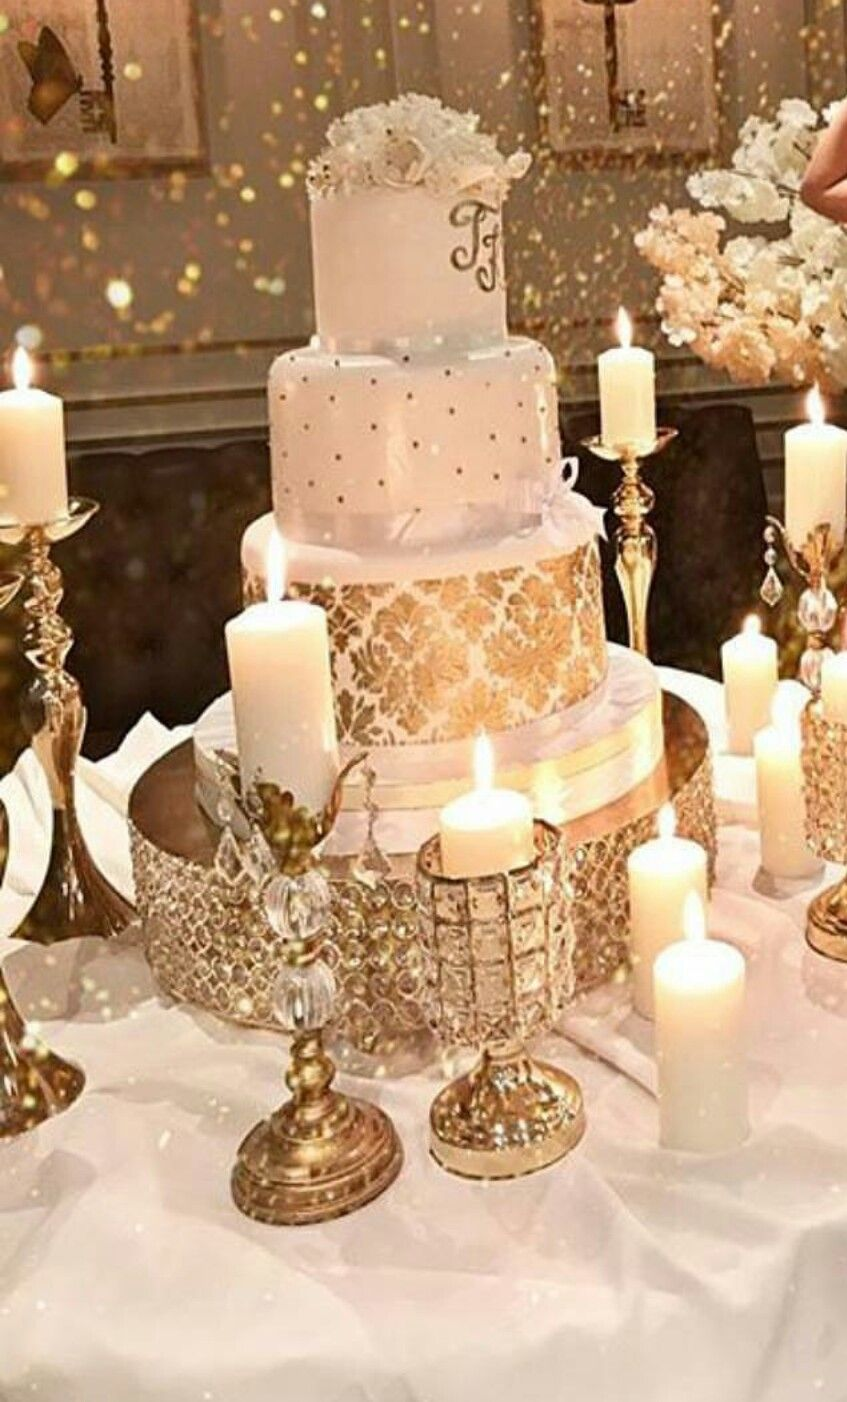 Cake Table Decor Switch Large Candles For Eiffel Towers Wedding Cake Table Decorations Cake Table Decorations Wedding Cake Table